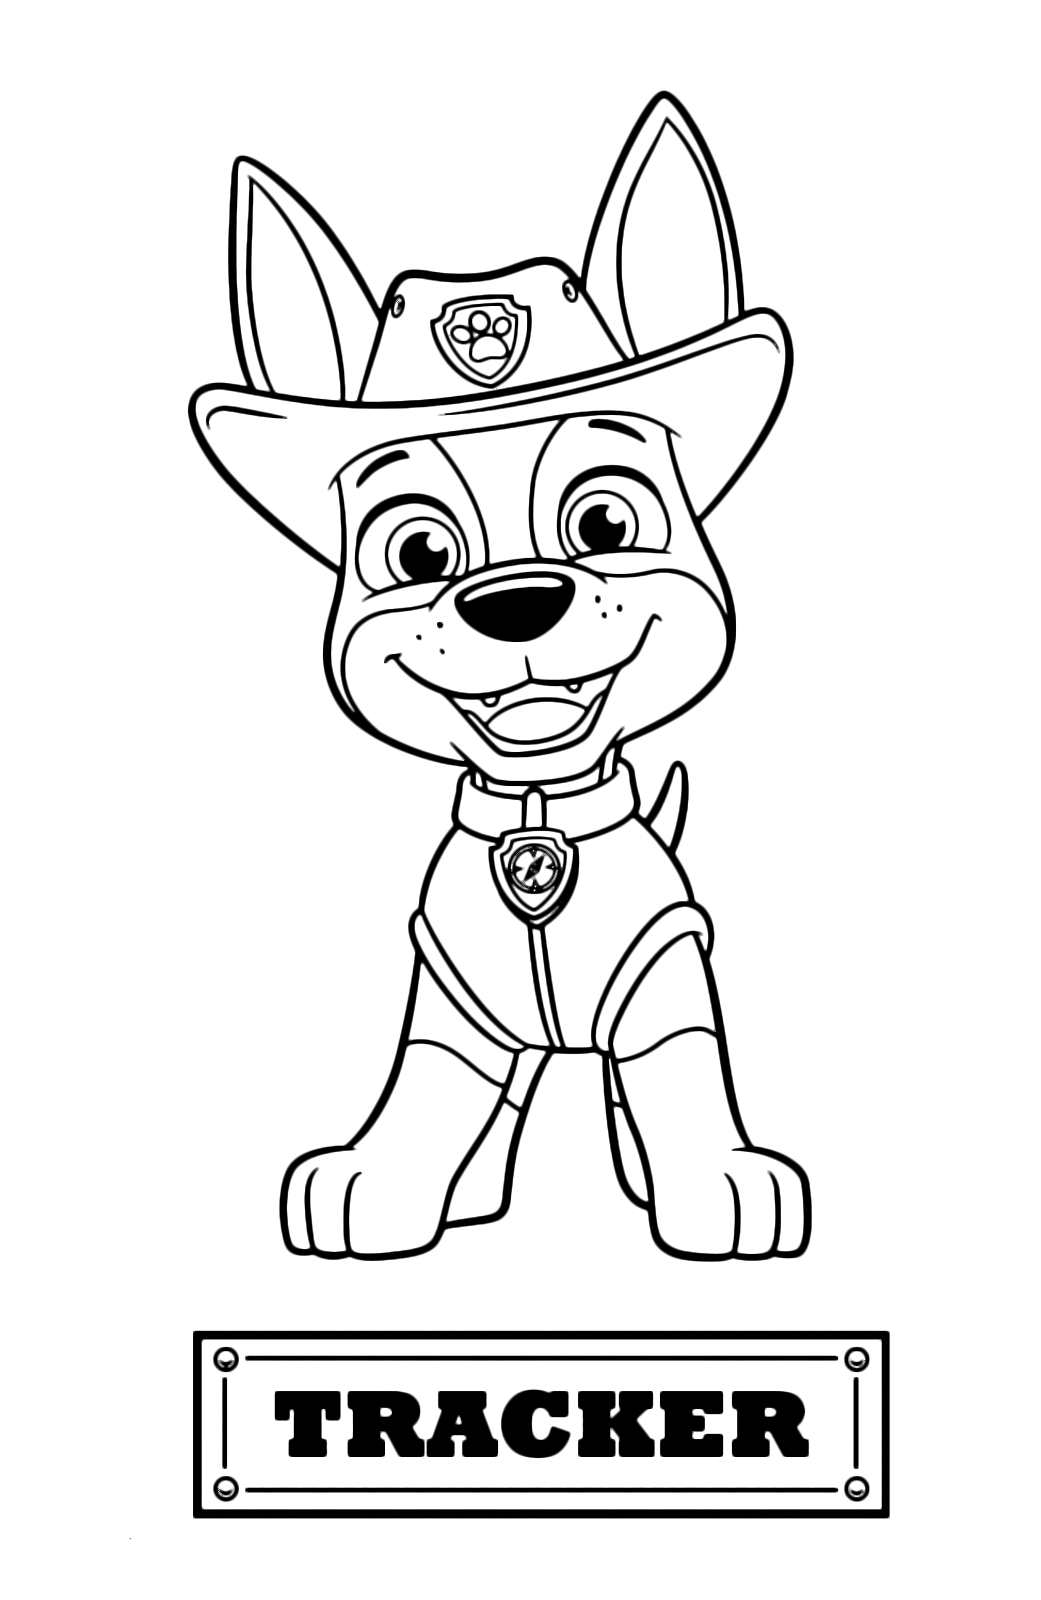 print paw patrol coloring pages paw patrol colouring paw patrol coloring pages print coloring print patrol paw pages